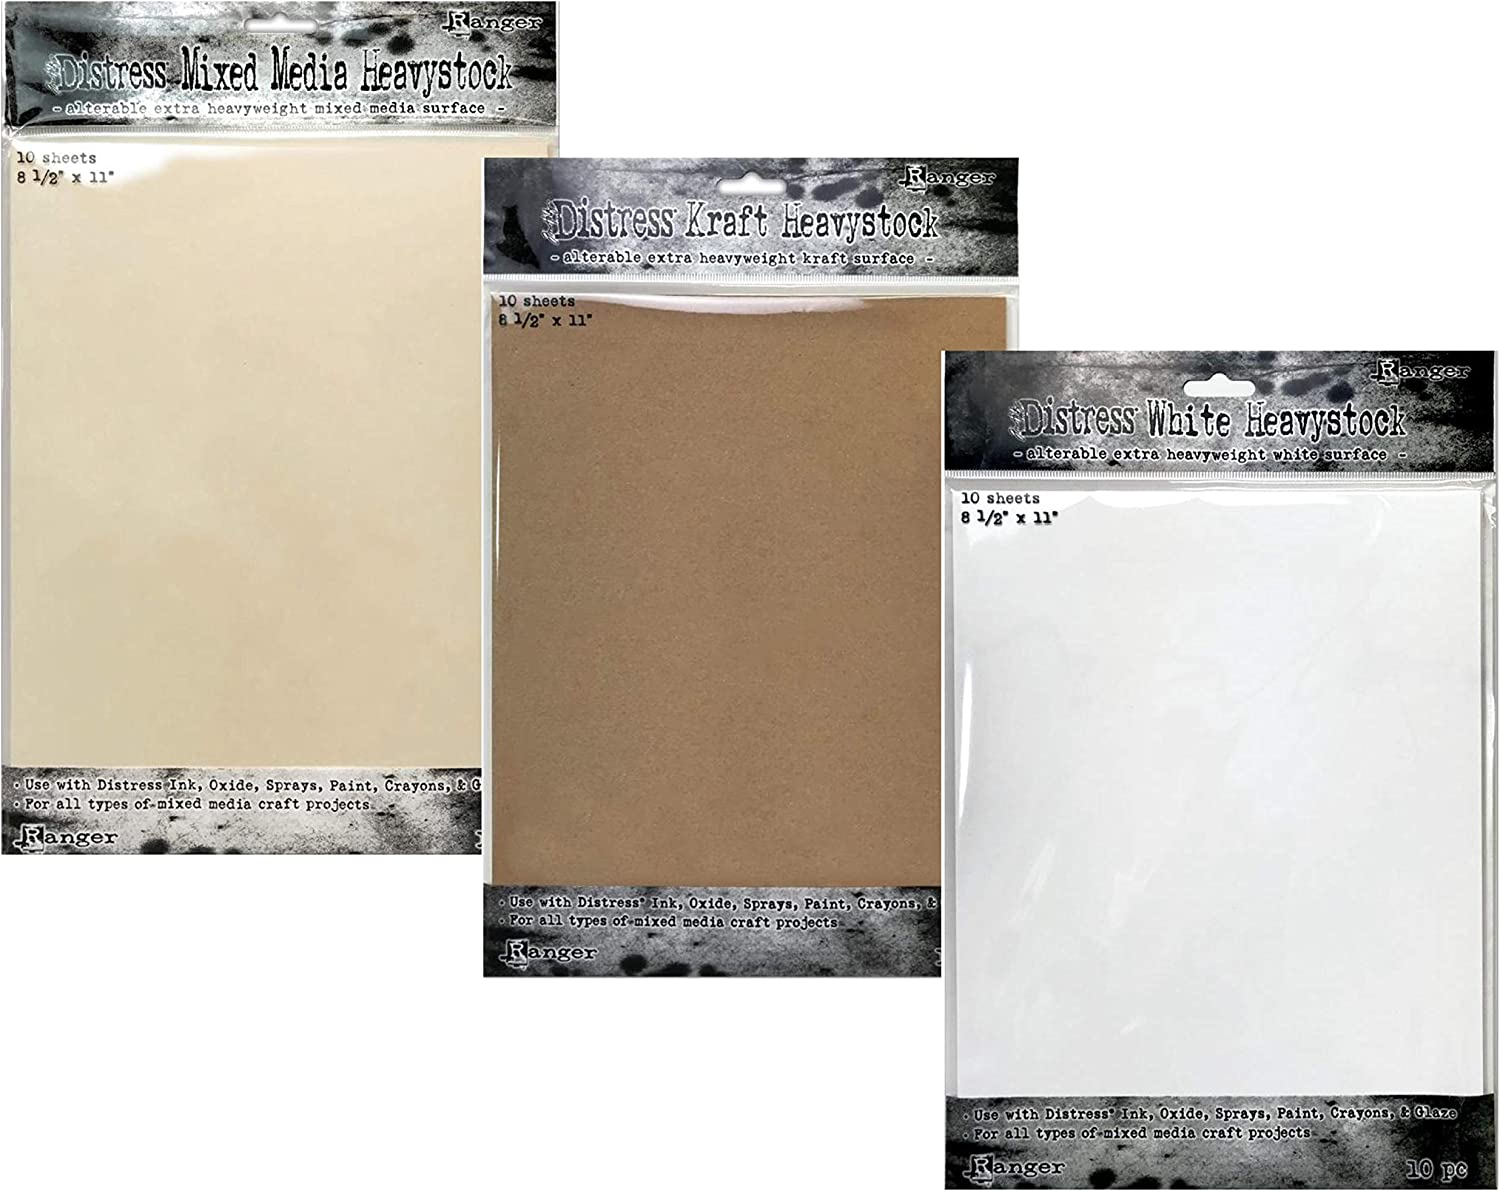 Tim Holtz Distress White Kraft and Heavystock New arrival Media Fixed price for sale Mixed 1 8